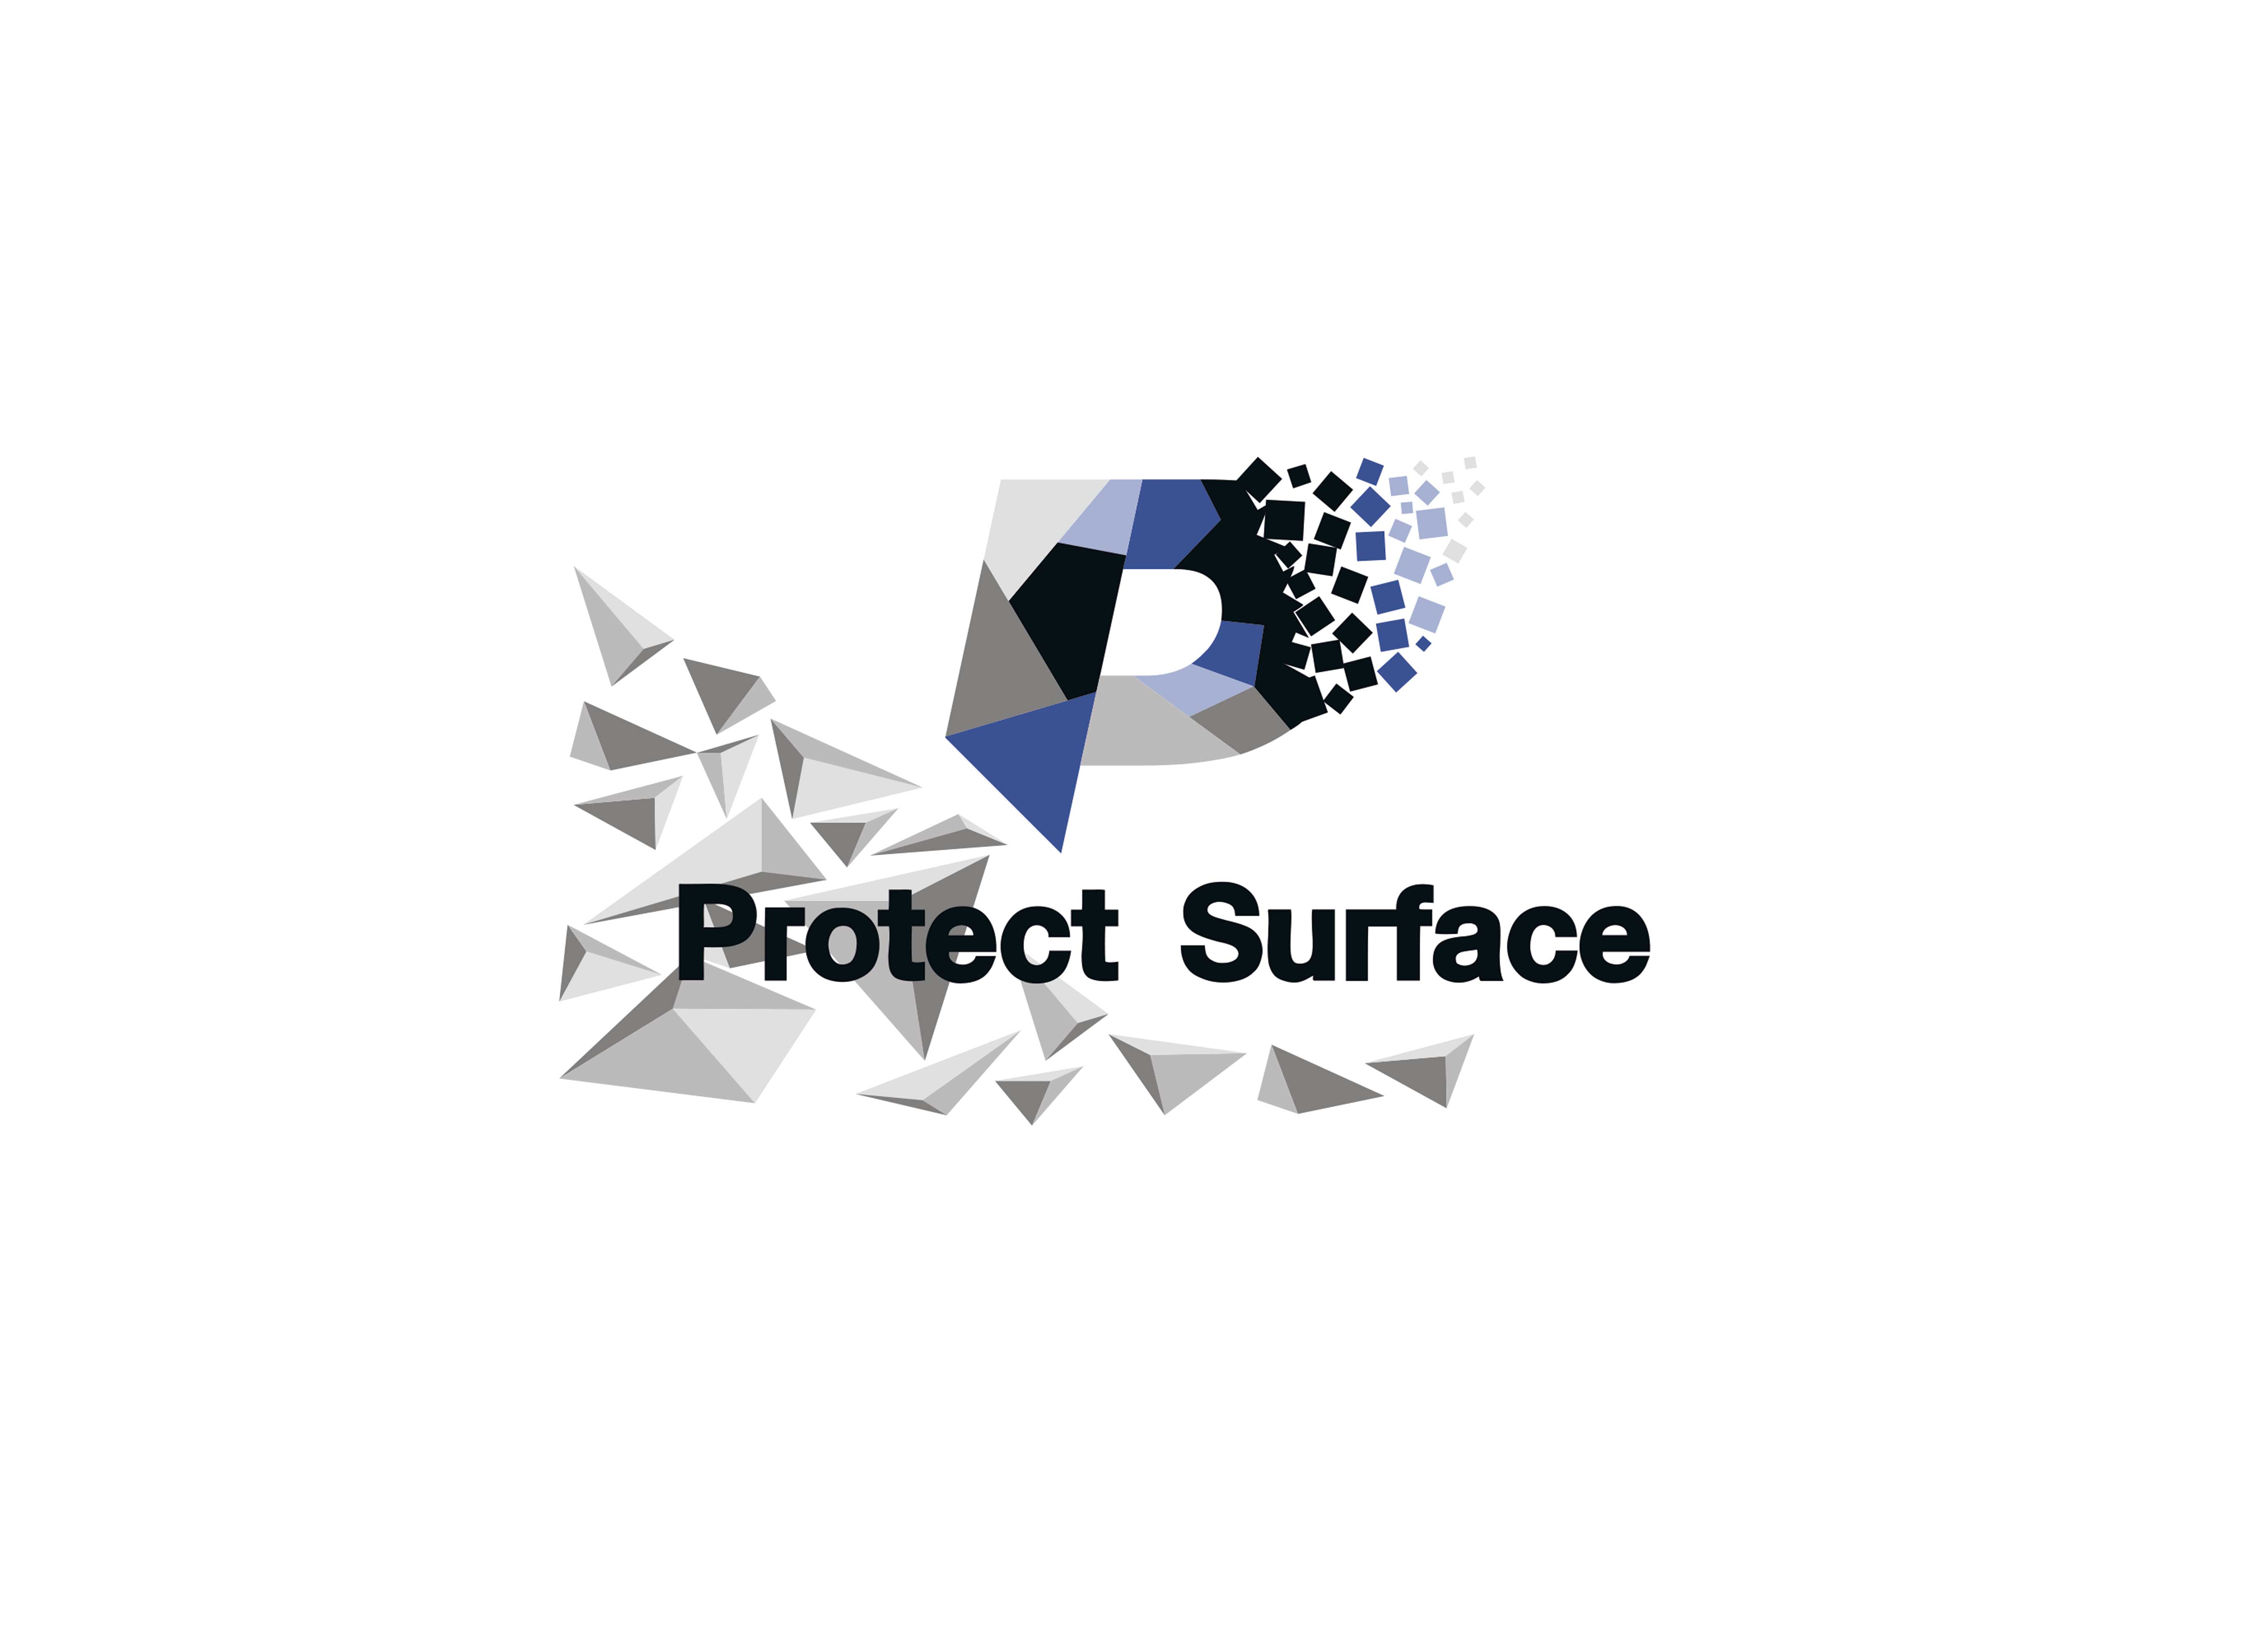 protect-surface-drc-marketingdigital